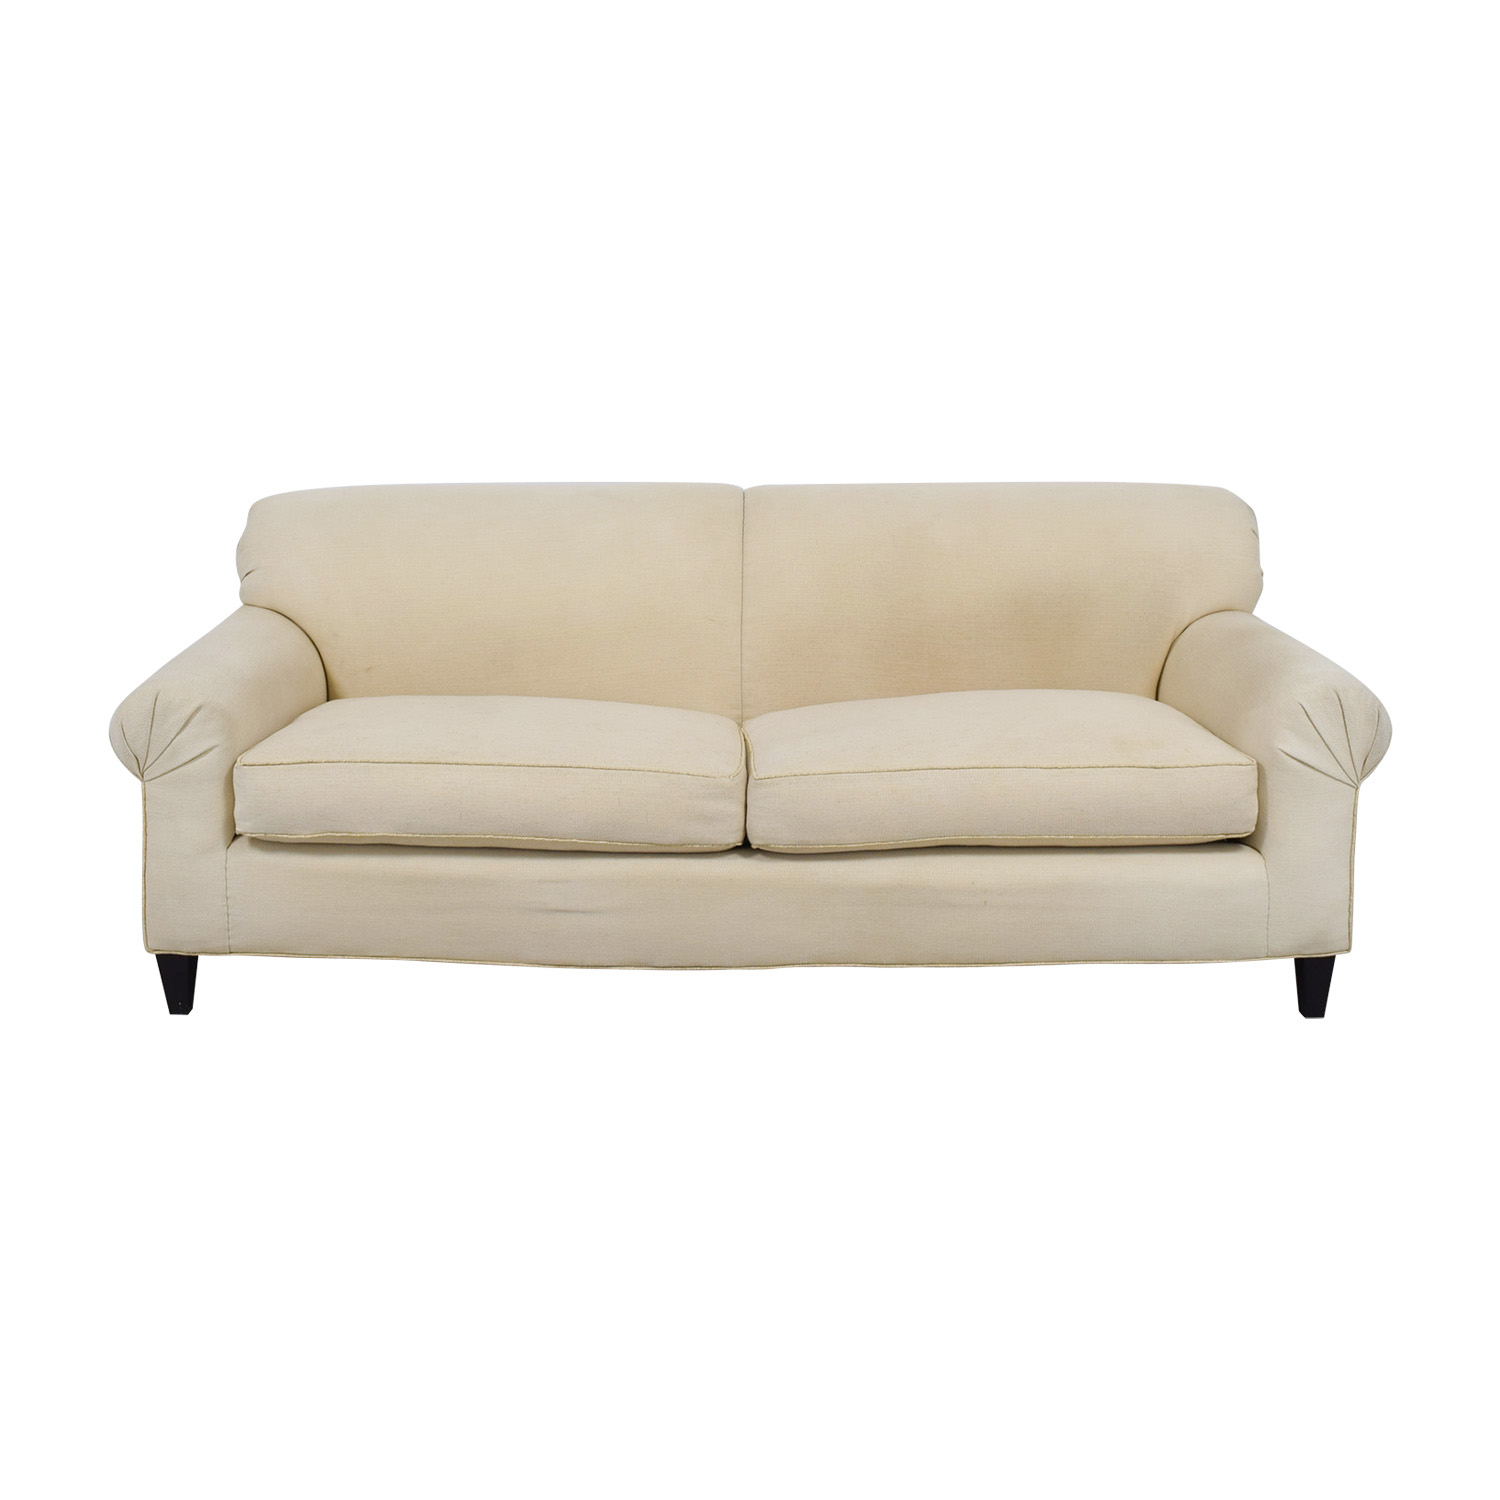 buy  White Two-Cushion Sofa online